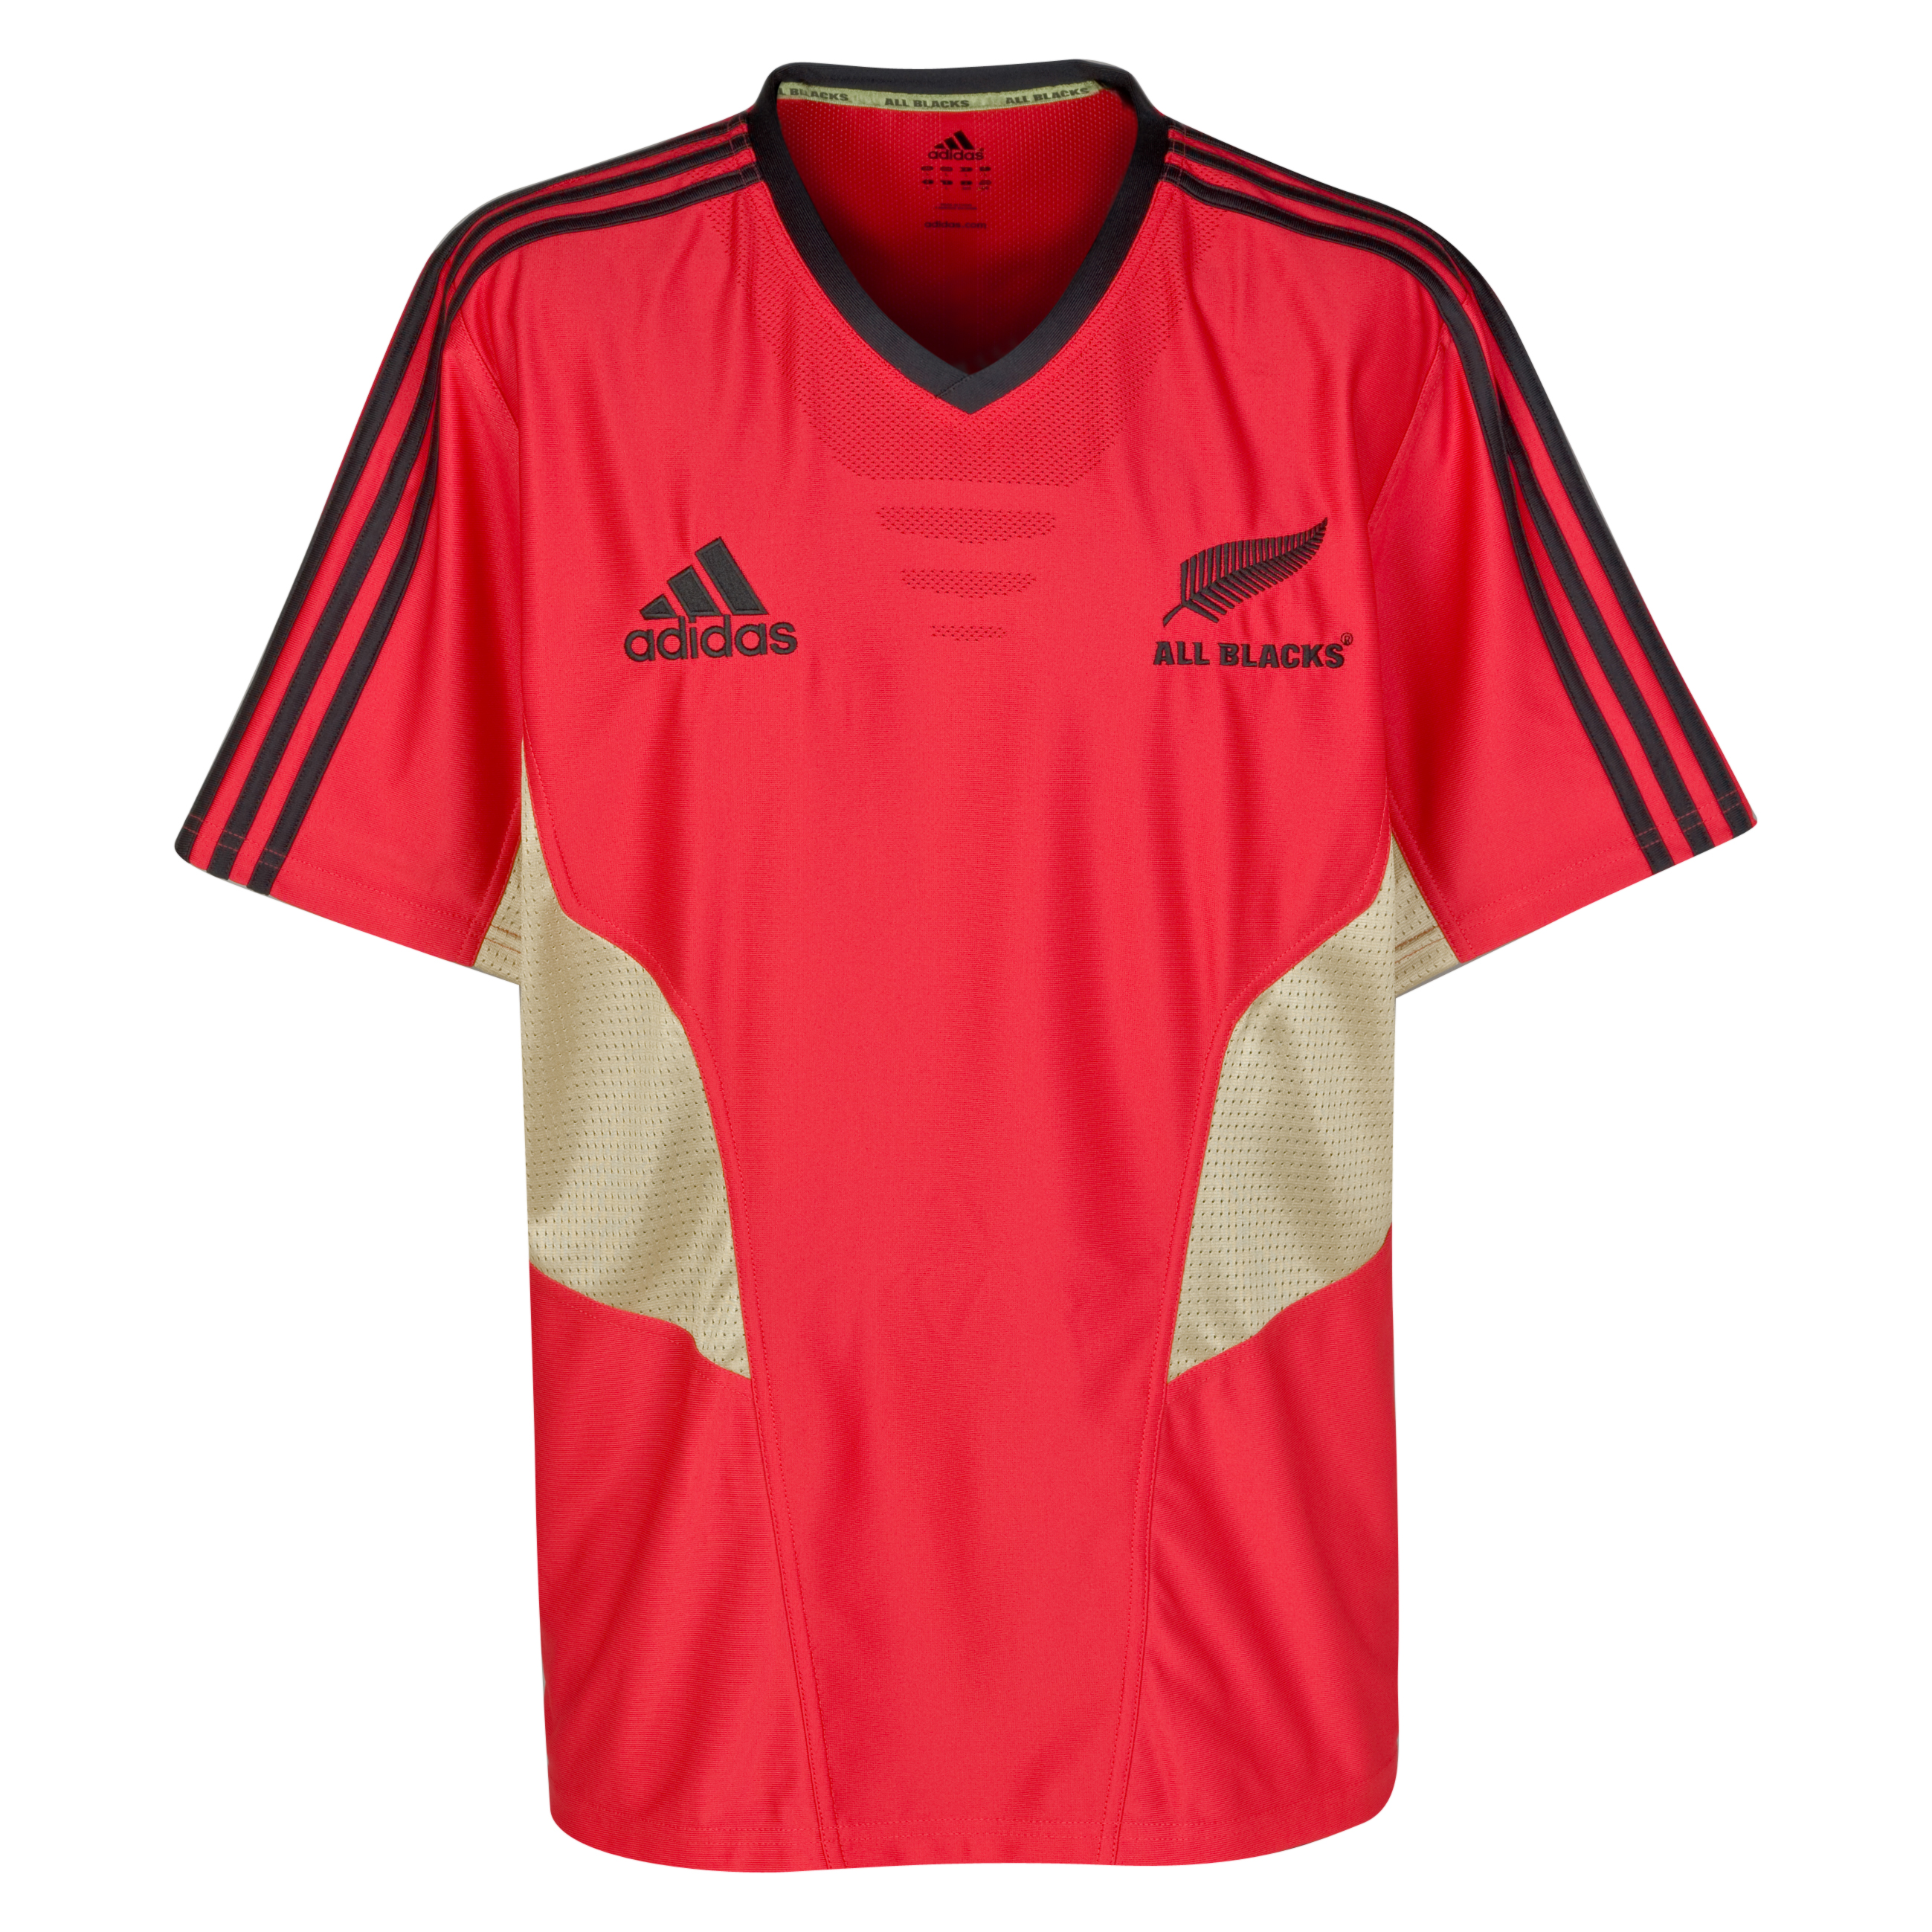 All Blacks Training Jersey - Radiant Red. for 20€